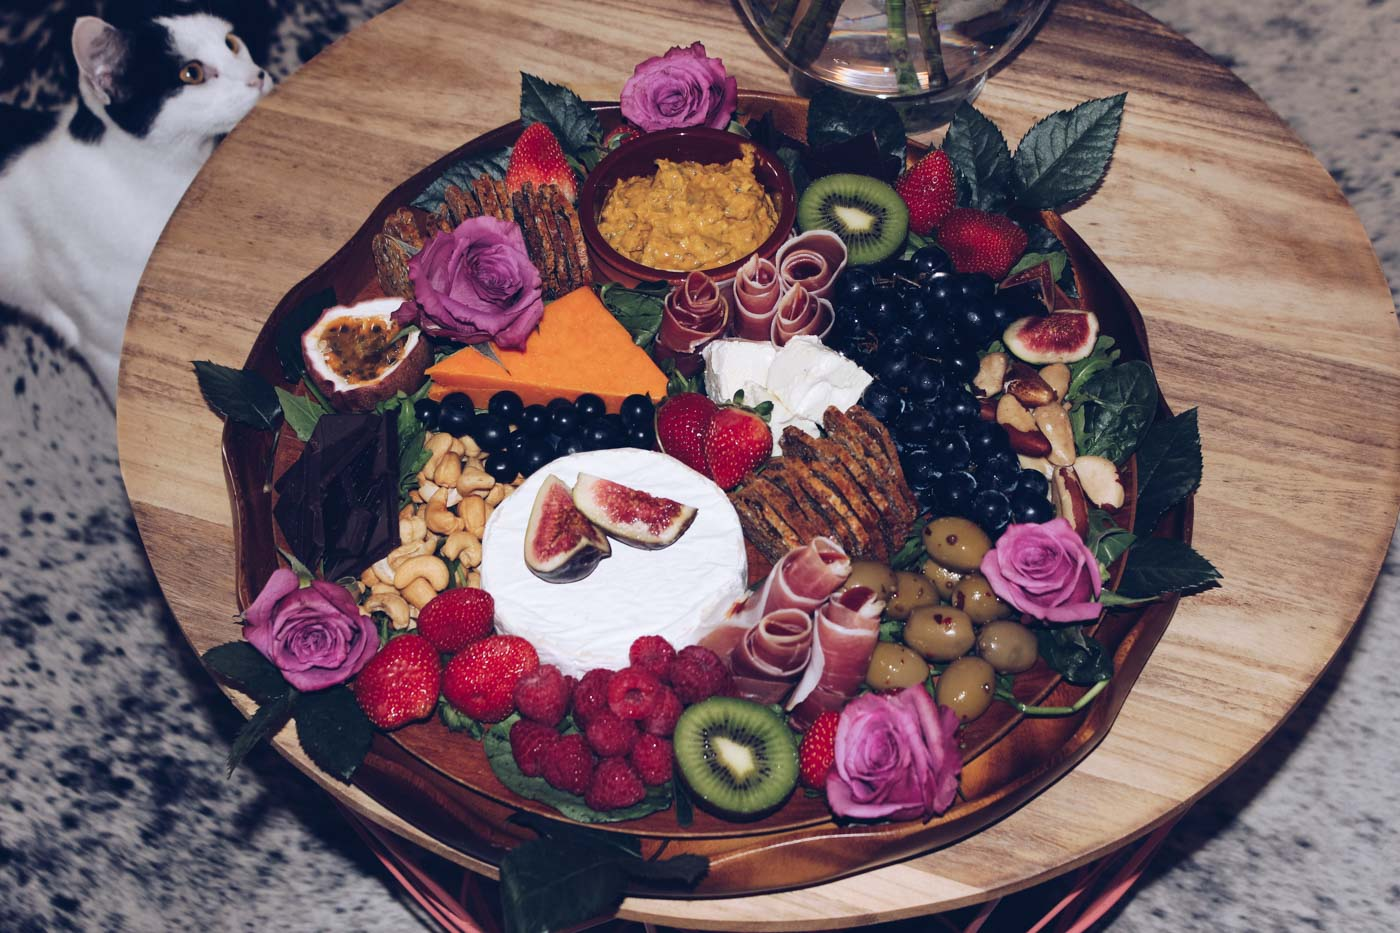 the_Collection_co_grazing_table_cairns_weddings_catering_small_platter copy-2.jpg